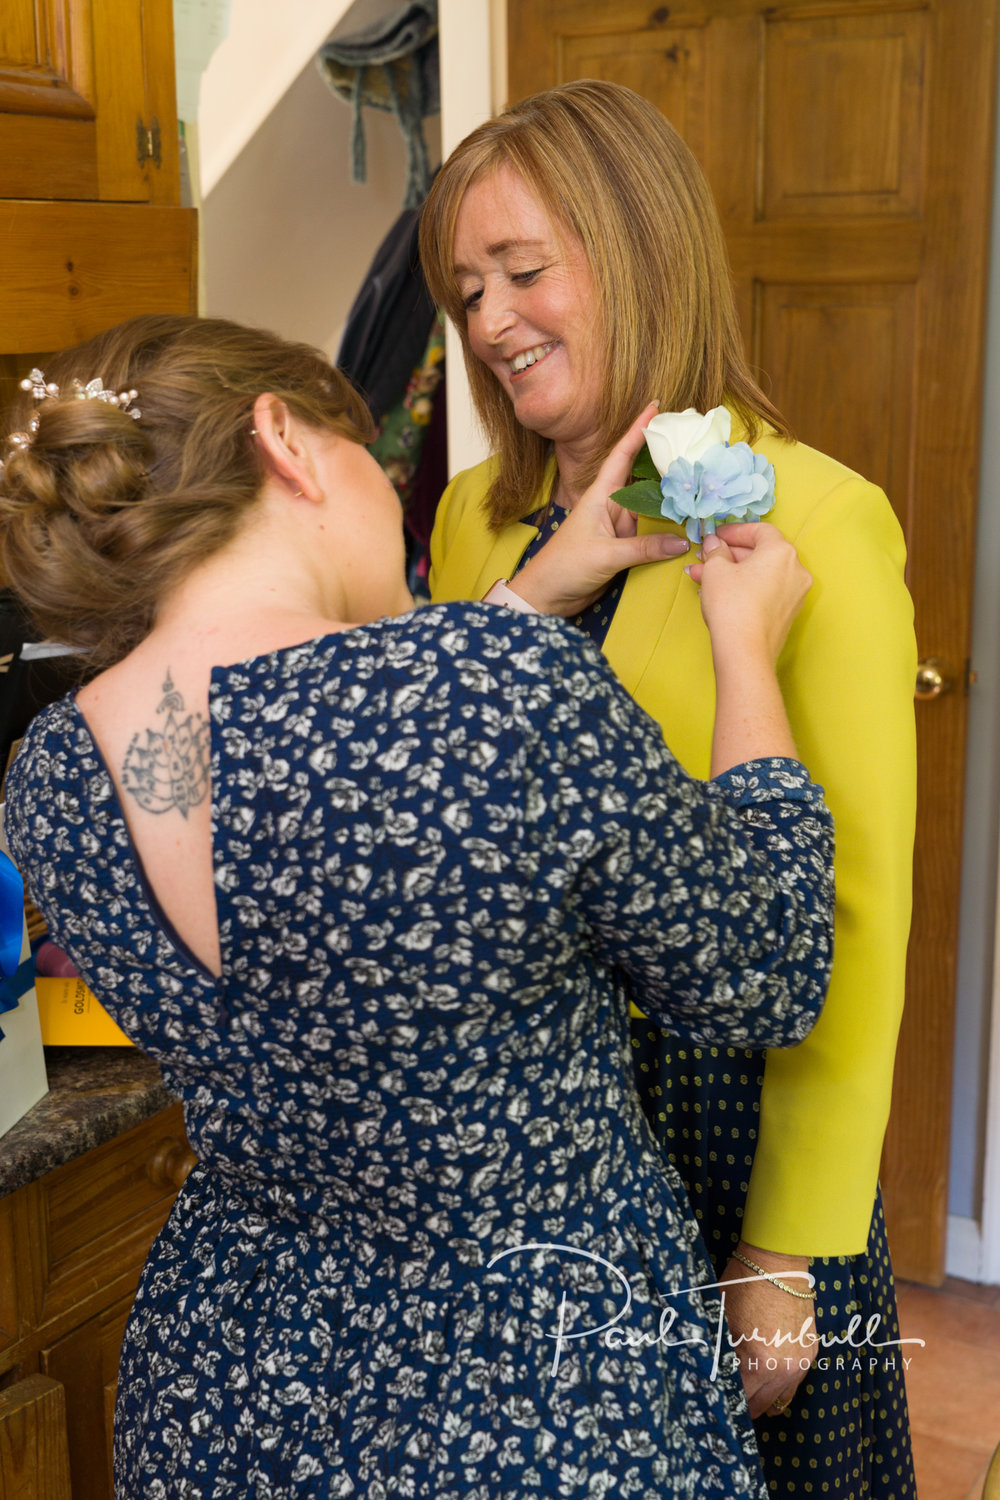 wedding-photographer-south-dalton-walkington-yorkshire-emma-james-021.jpg